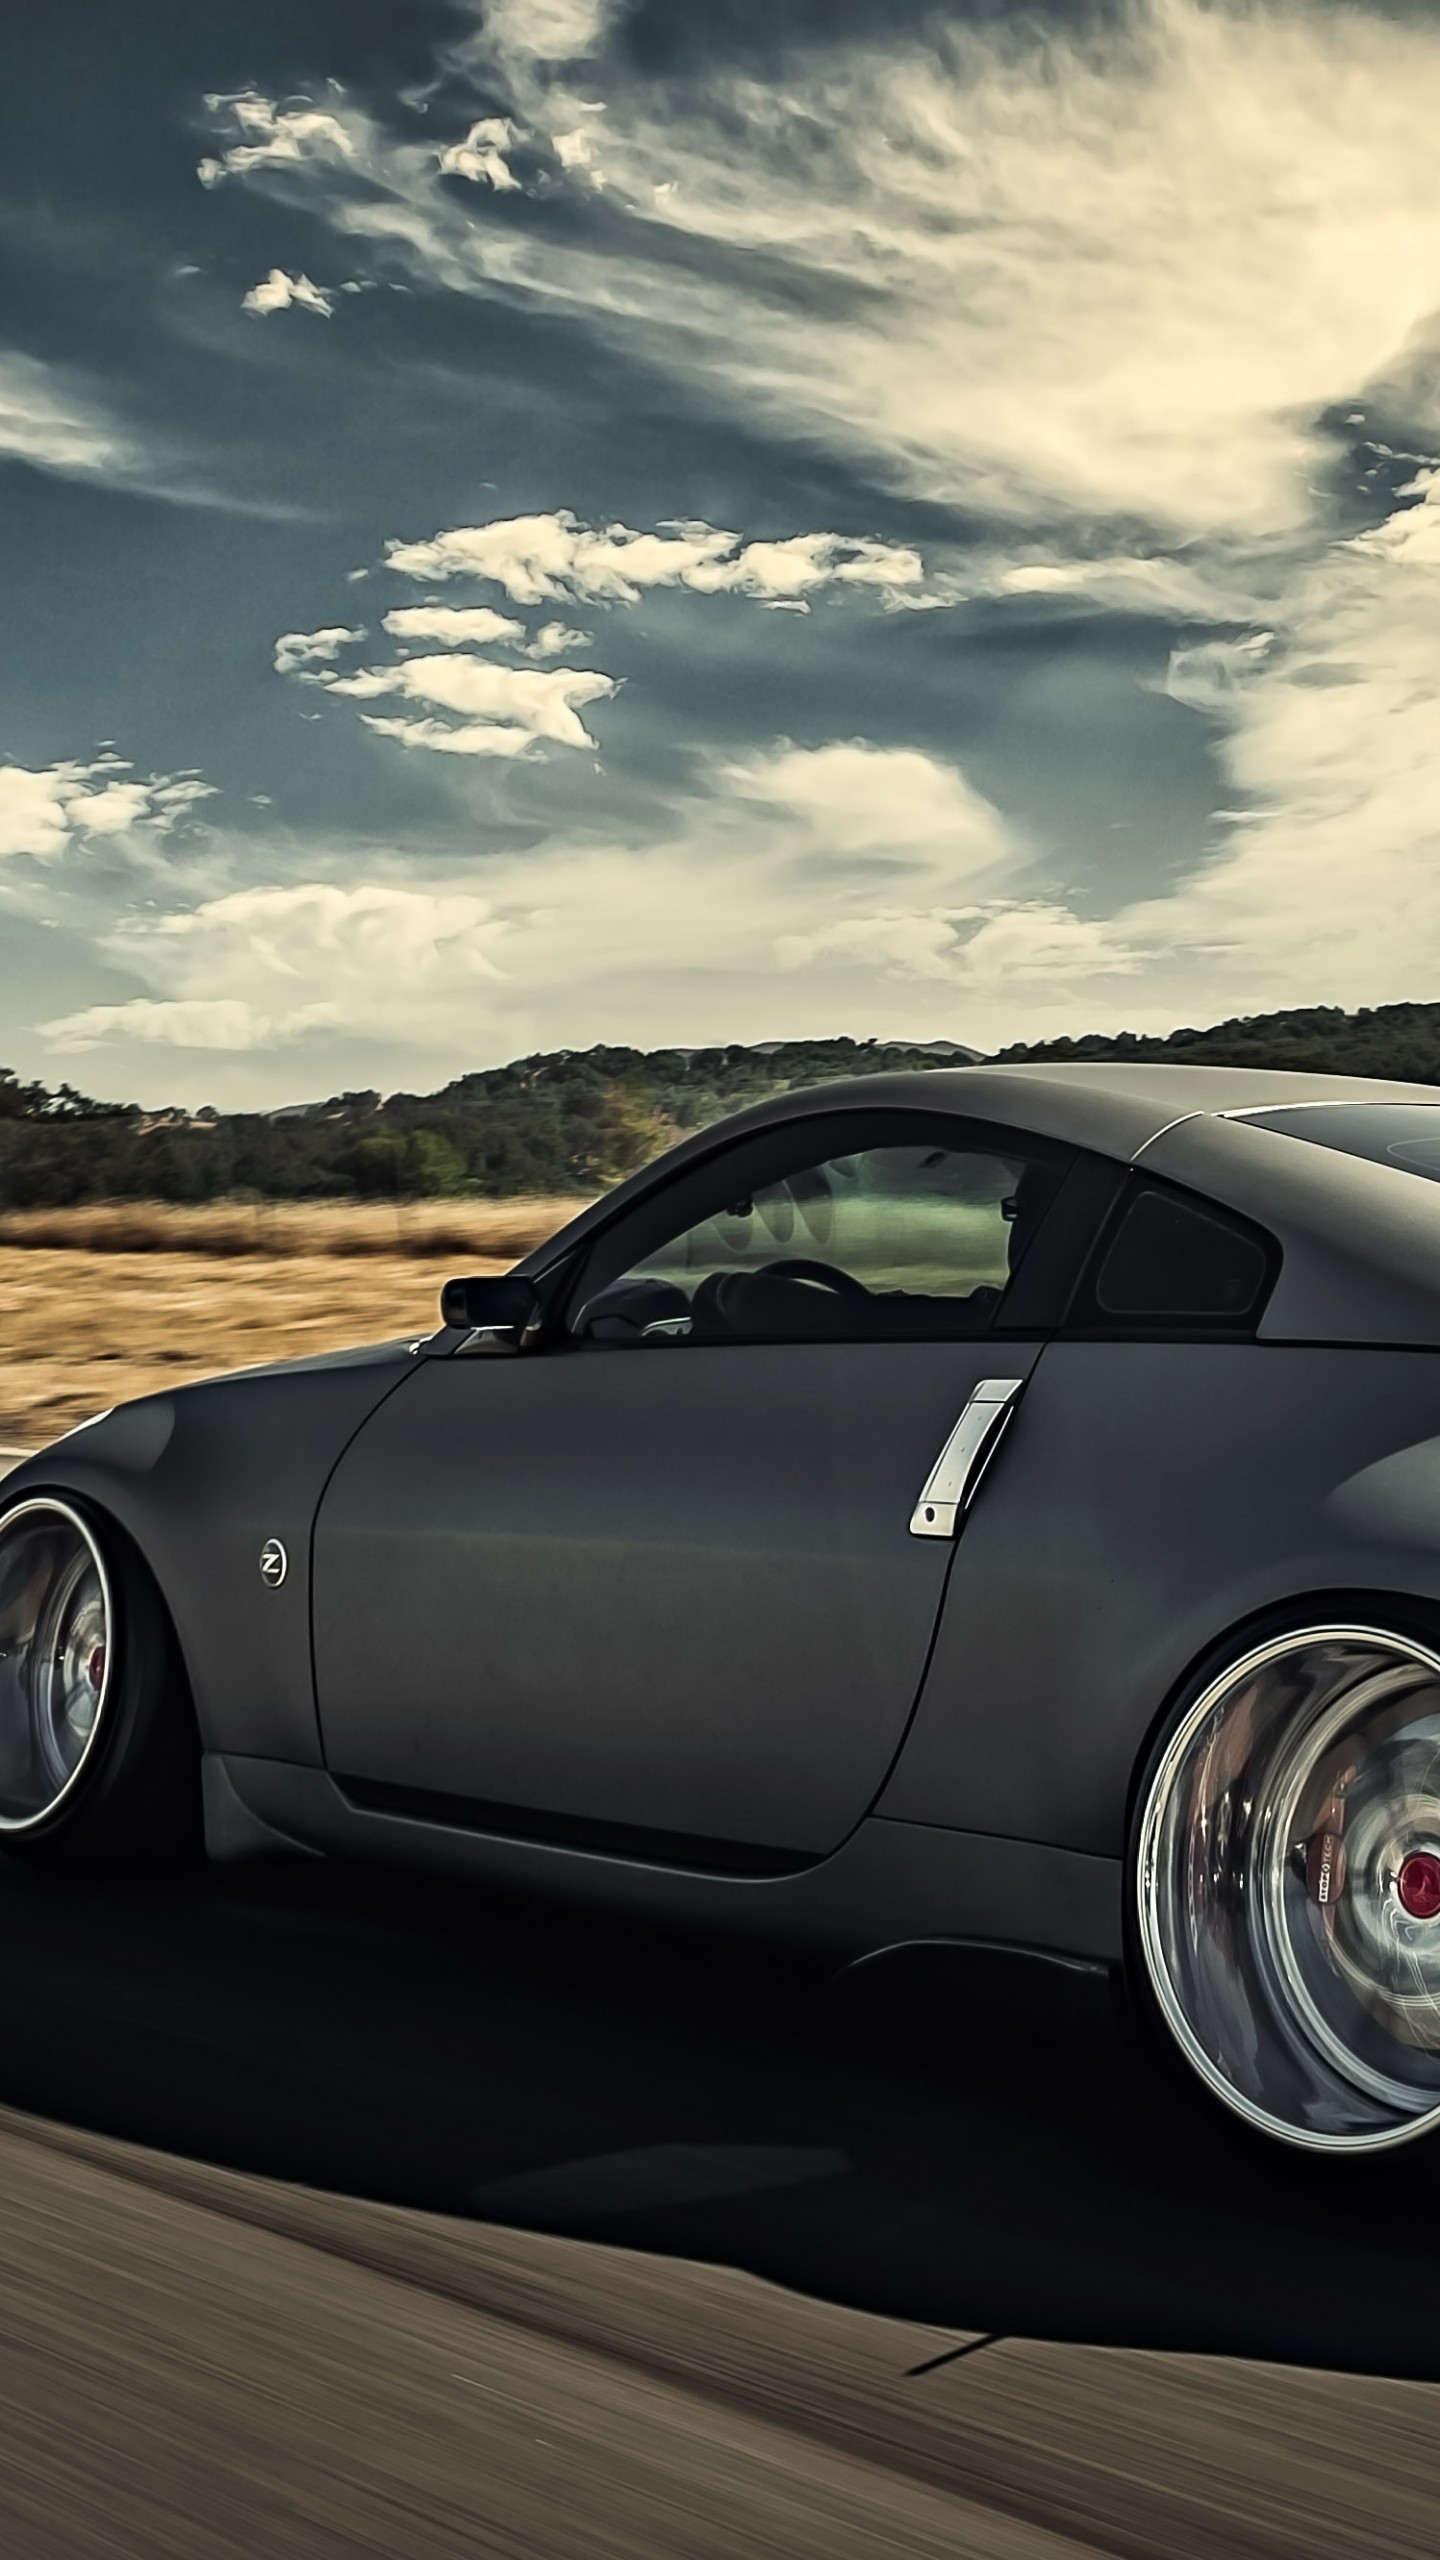 1440x2560 Preview wallpaper nissan, 350z, stance, movement, speed, side view